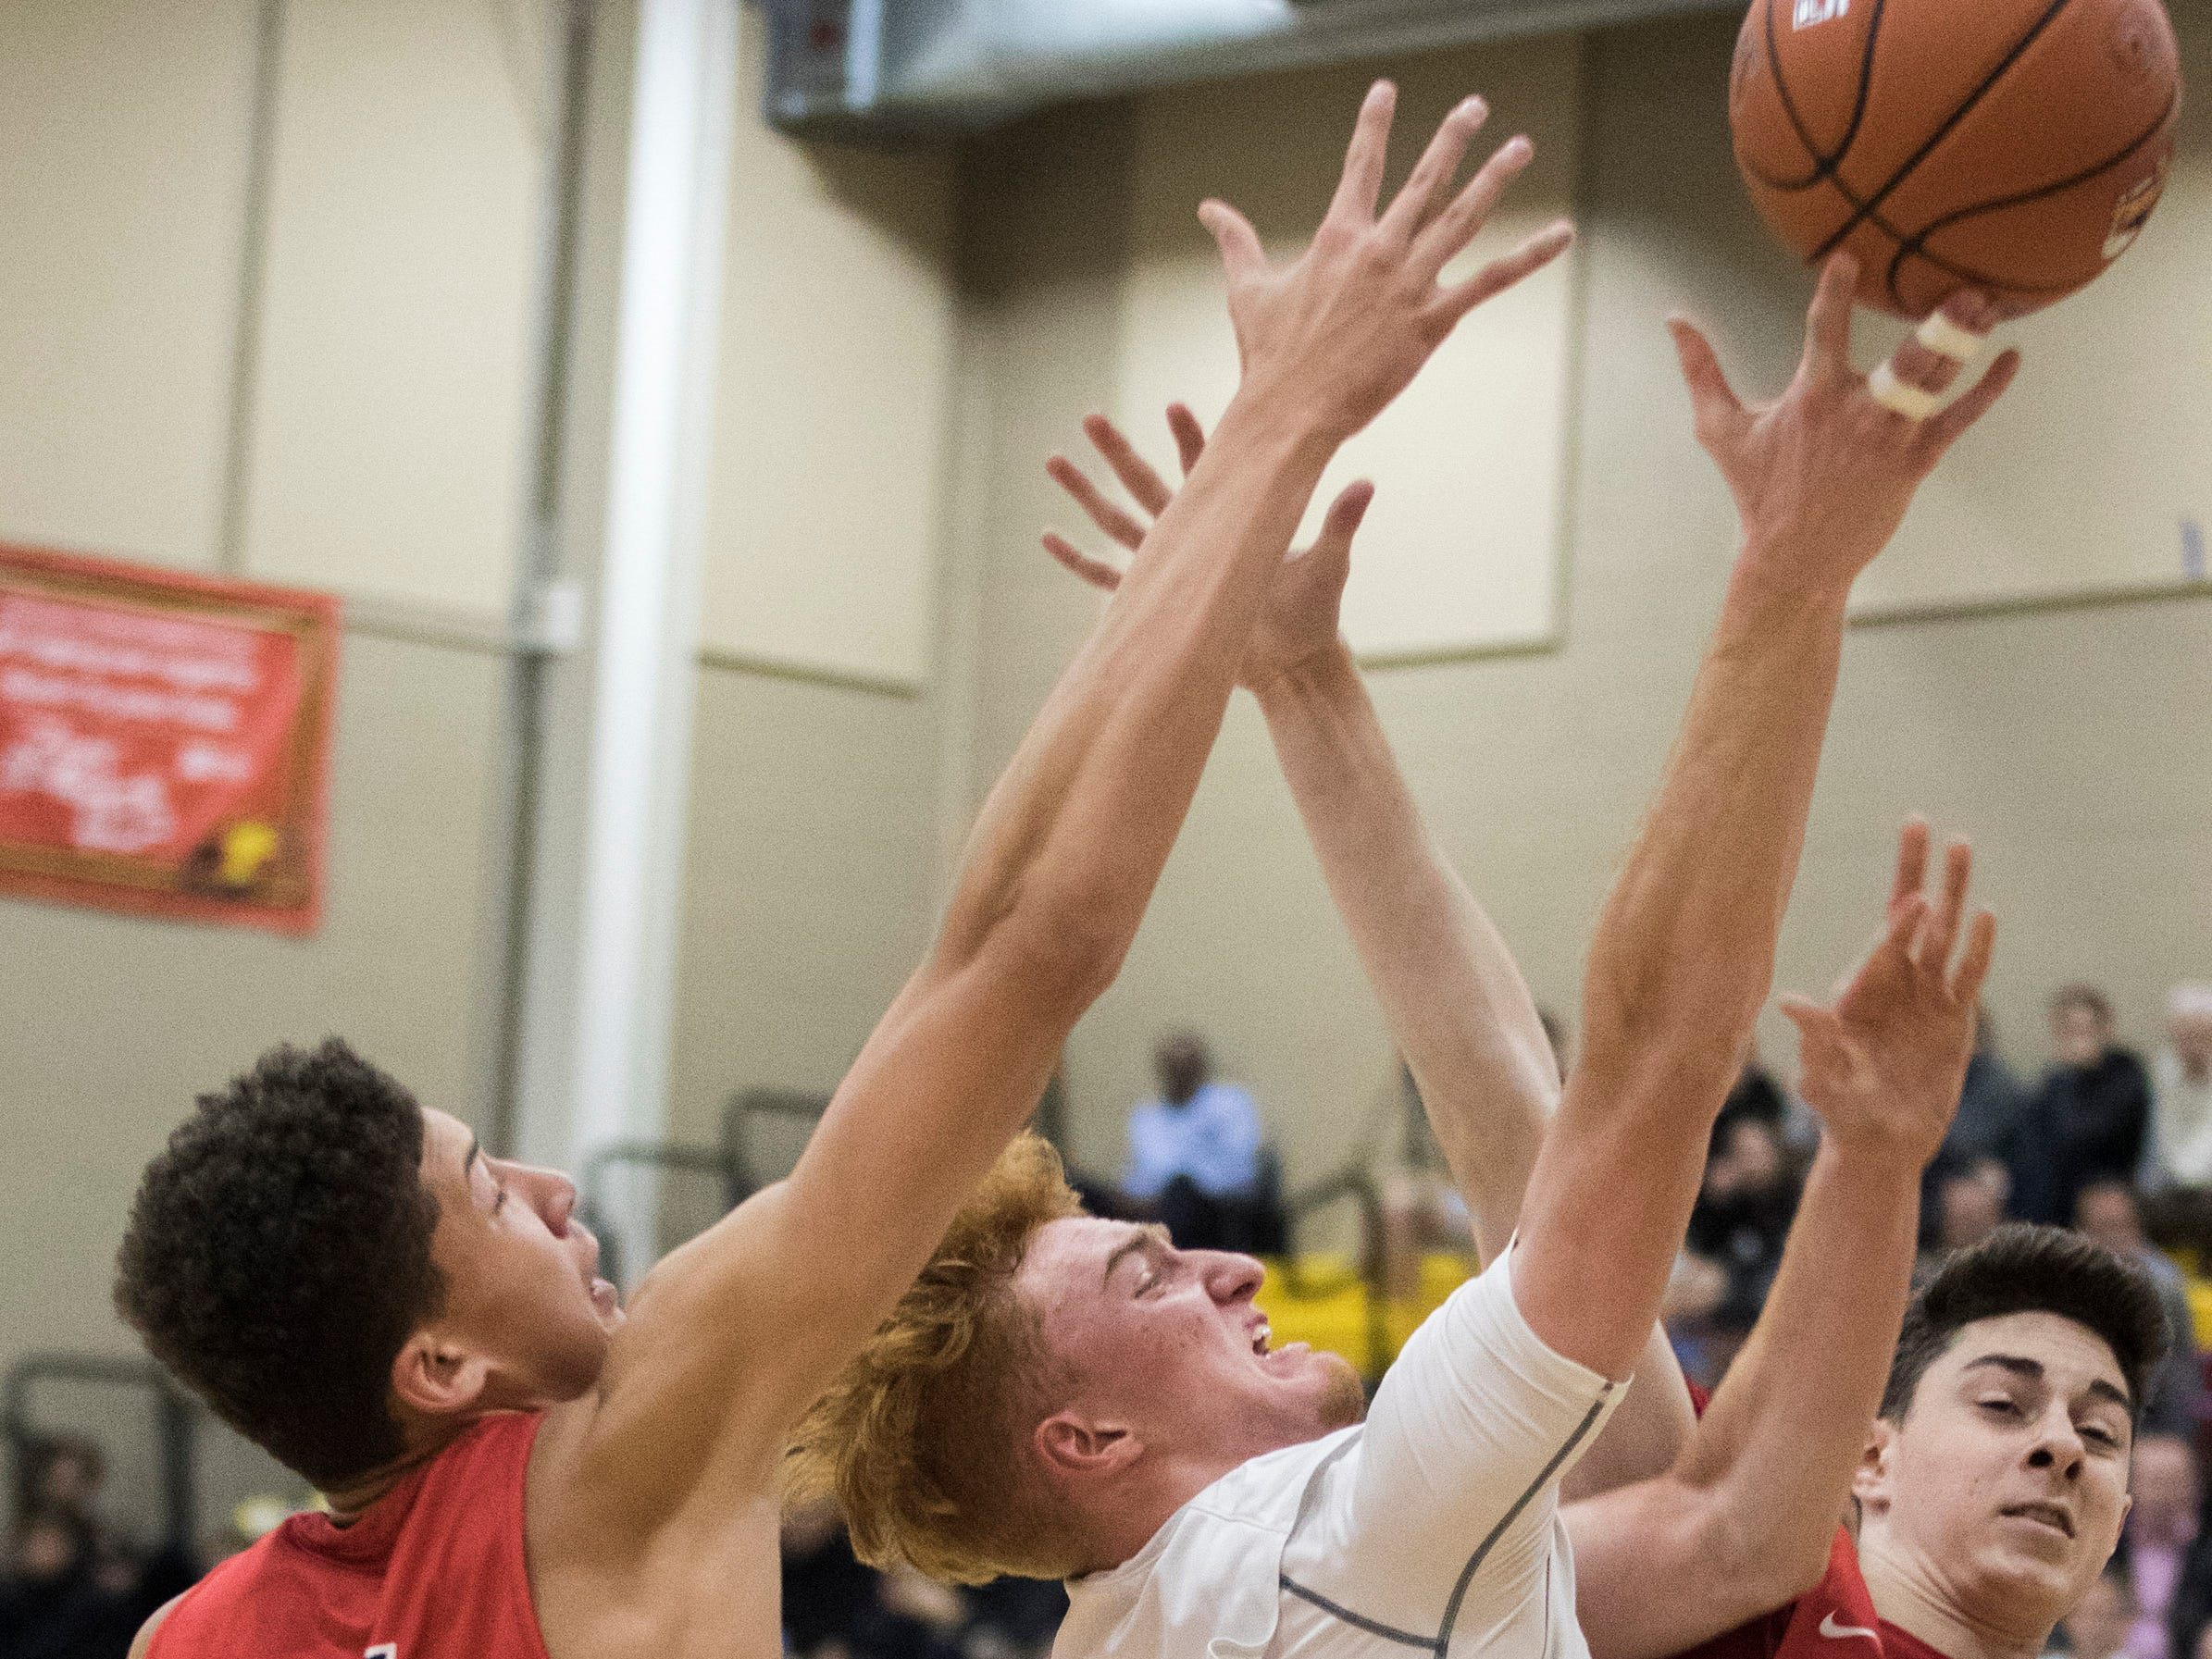 Pinnacle's Nico Mannion drives the lane and scores against San Joaquin Memorial's Braxton Meah (34) and Jaden Geron(1) during in the first half of their game in Scottsdale, Thurs, Dec. 6, 2018.